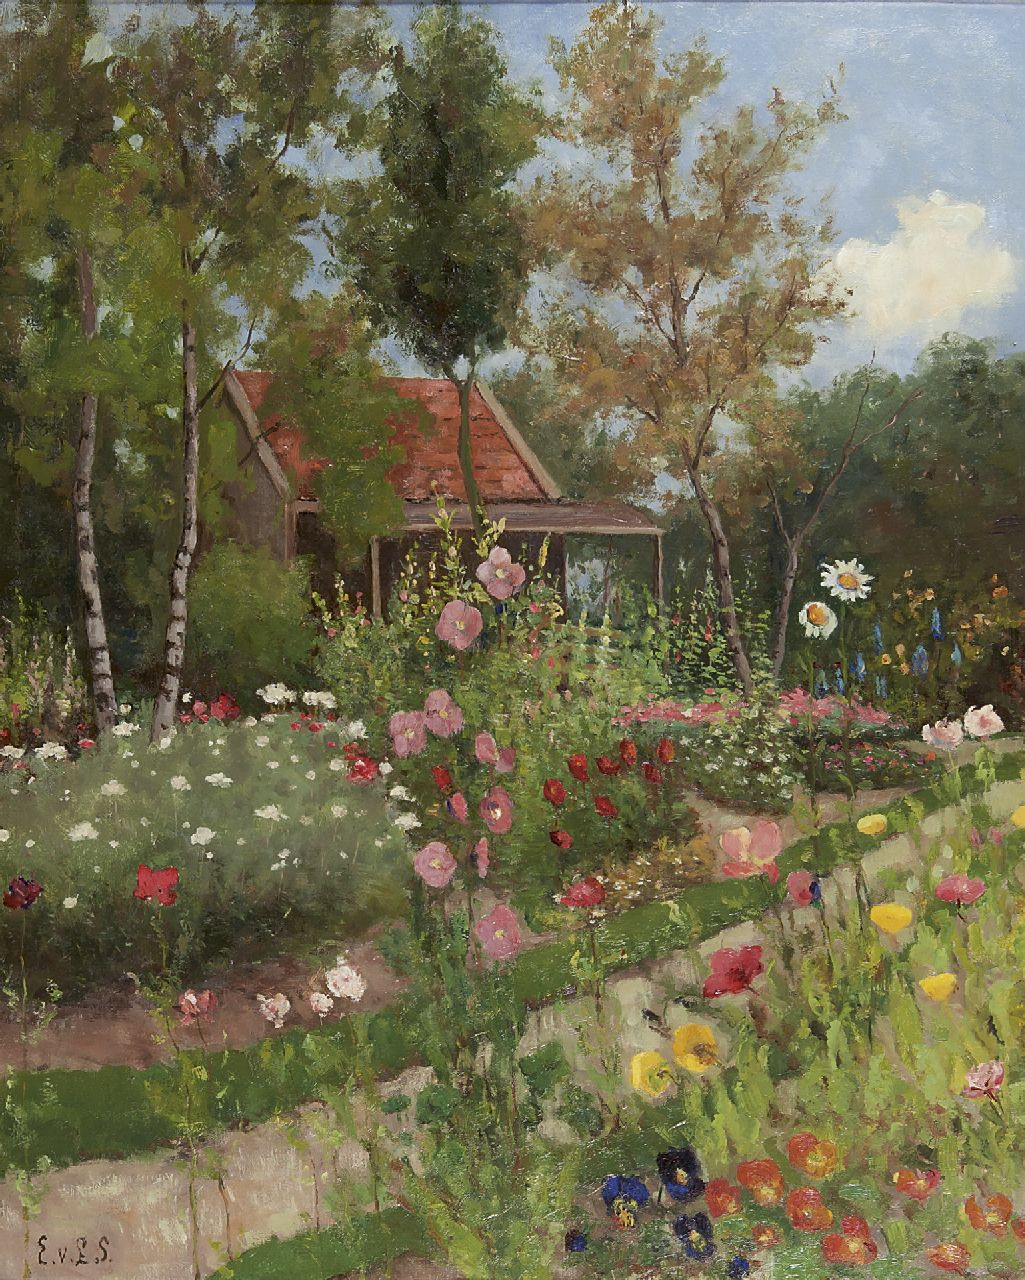 Eldina Aldegonda Rinsina van Limburg Stirum | A flower garden with a house, oil on canvas, 80.5 x 65.7 cm, signed l.l. with initials